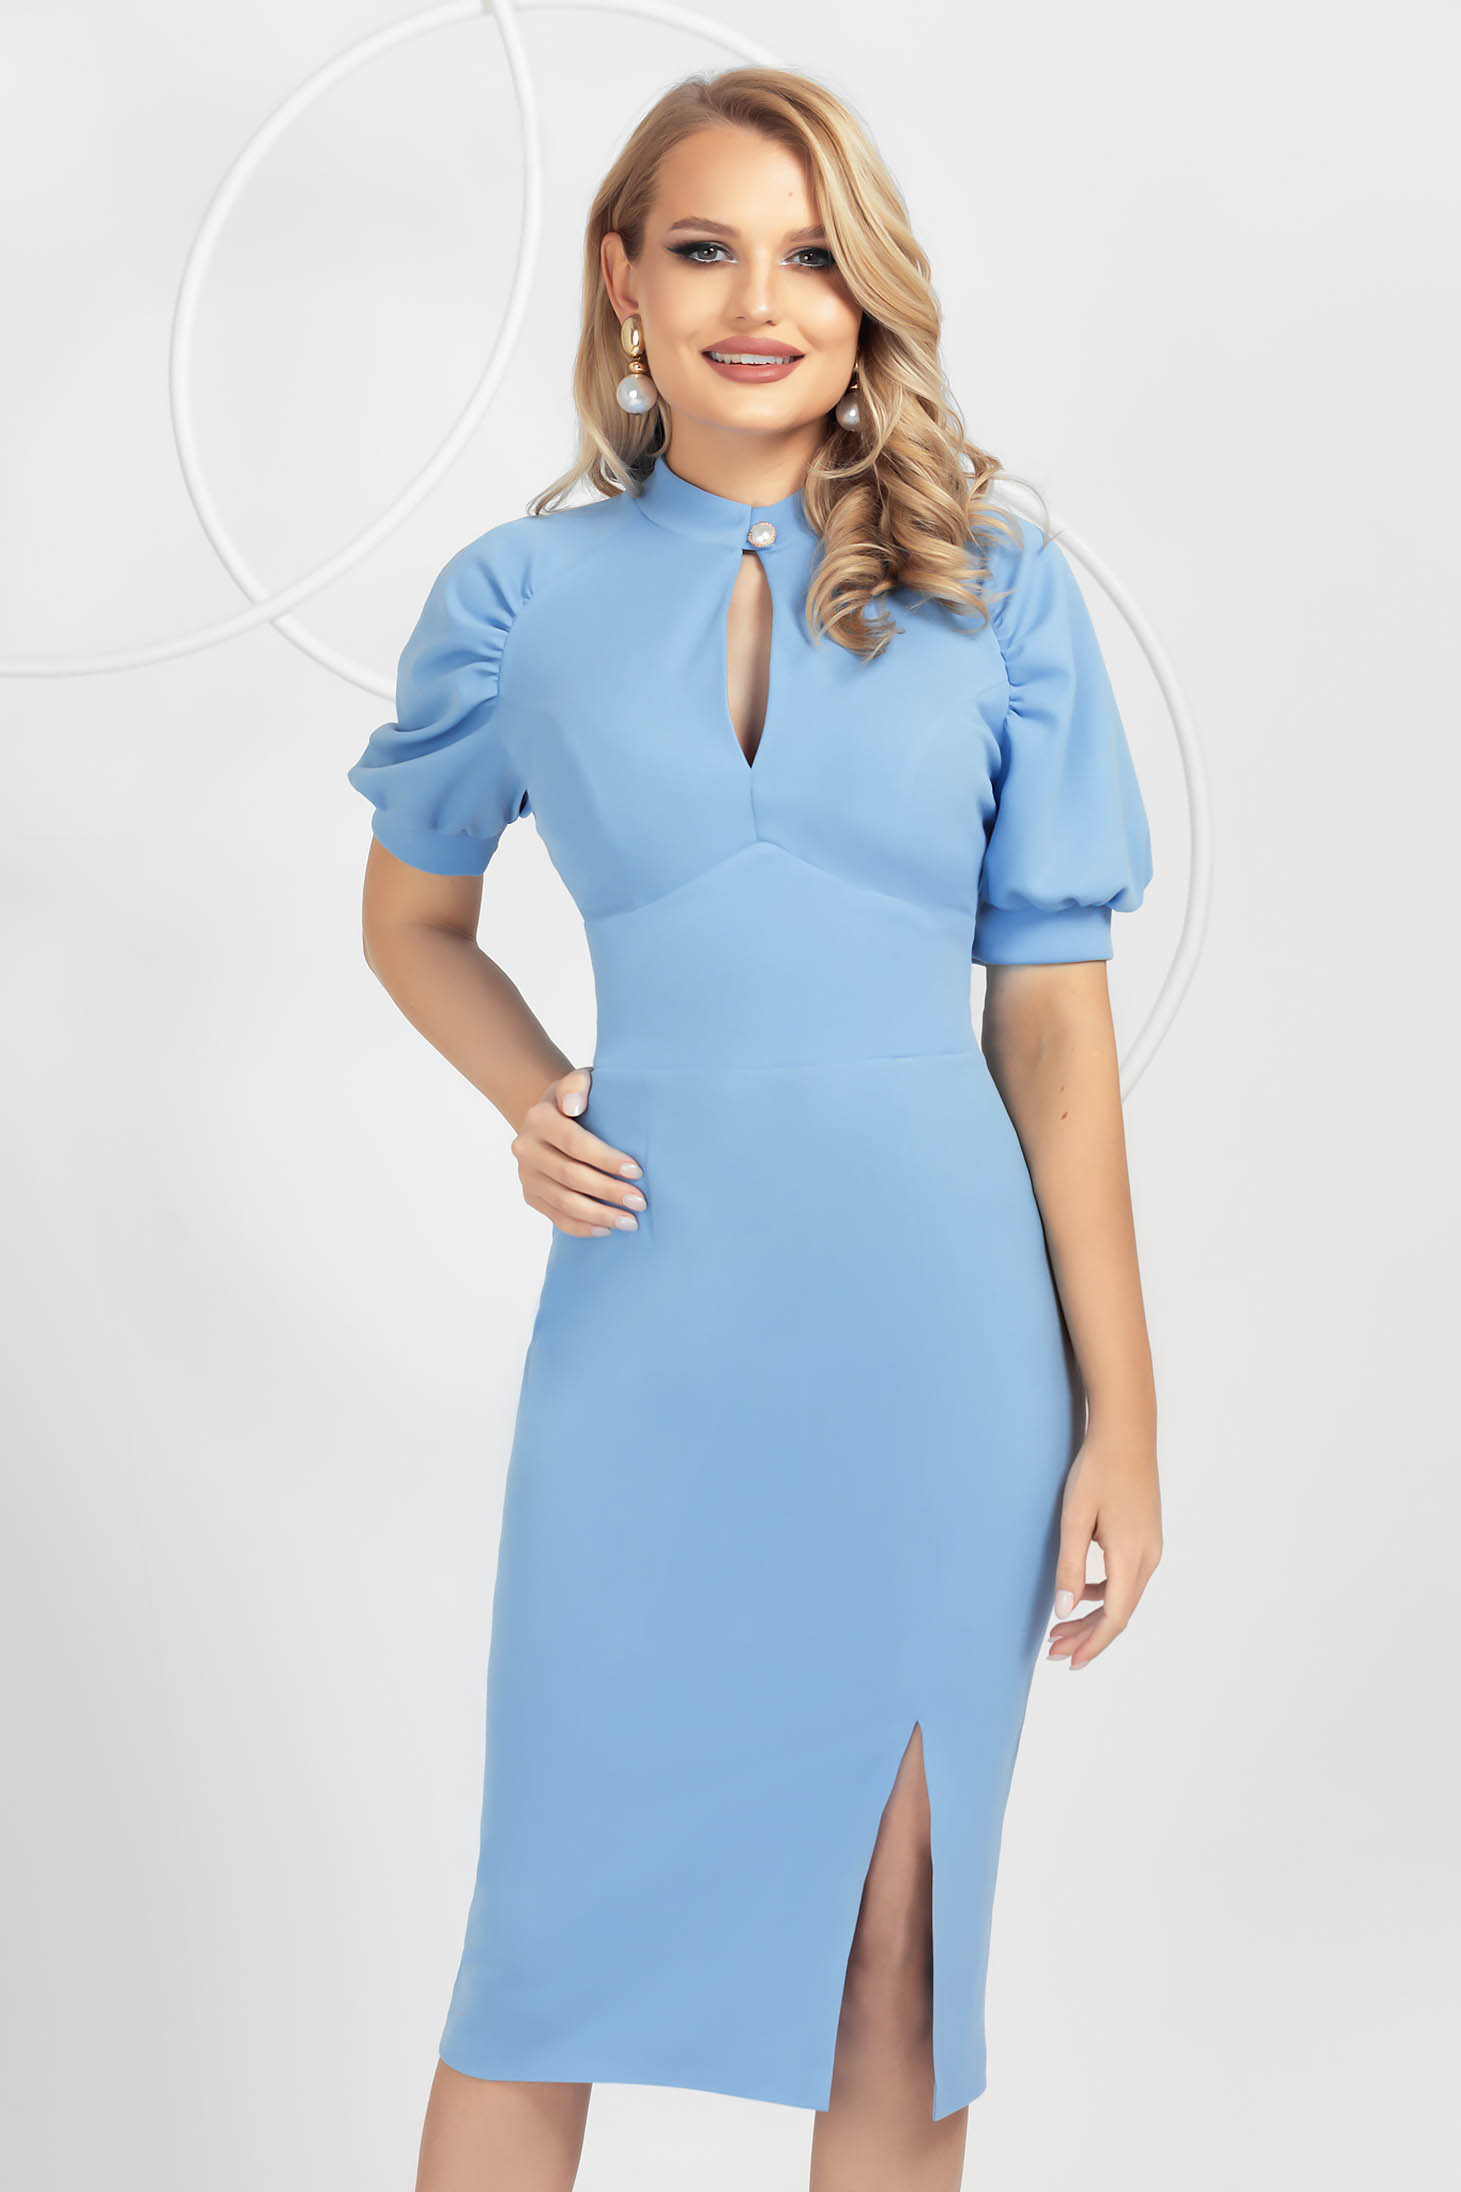 Lightblue dress pencil from elastic fabric with puffed sleeves frontal slit